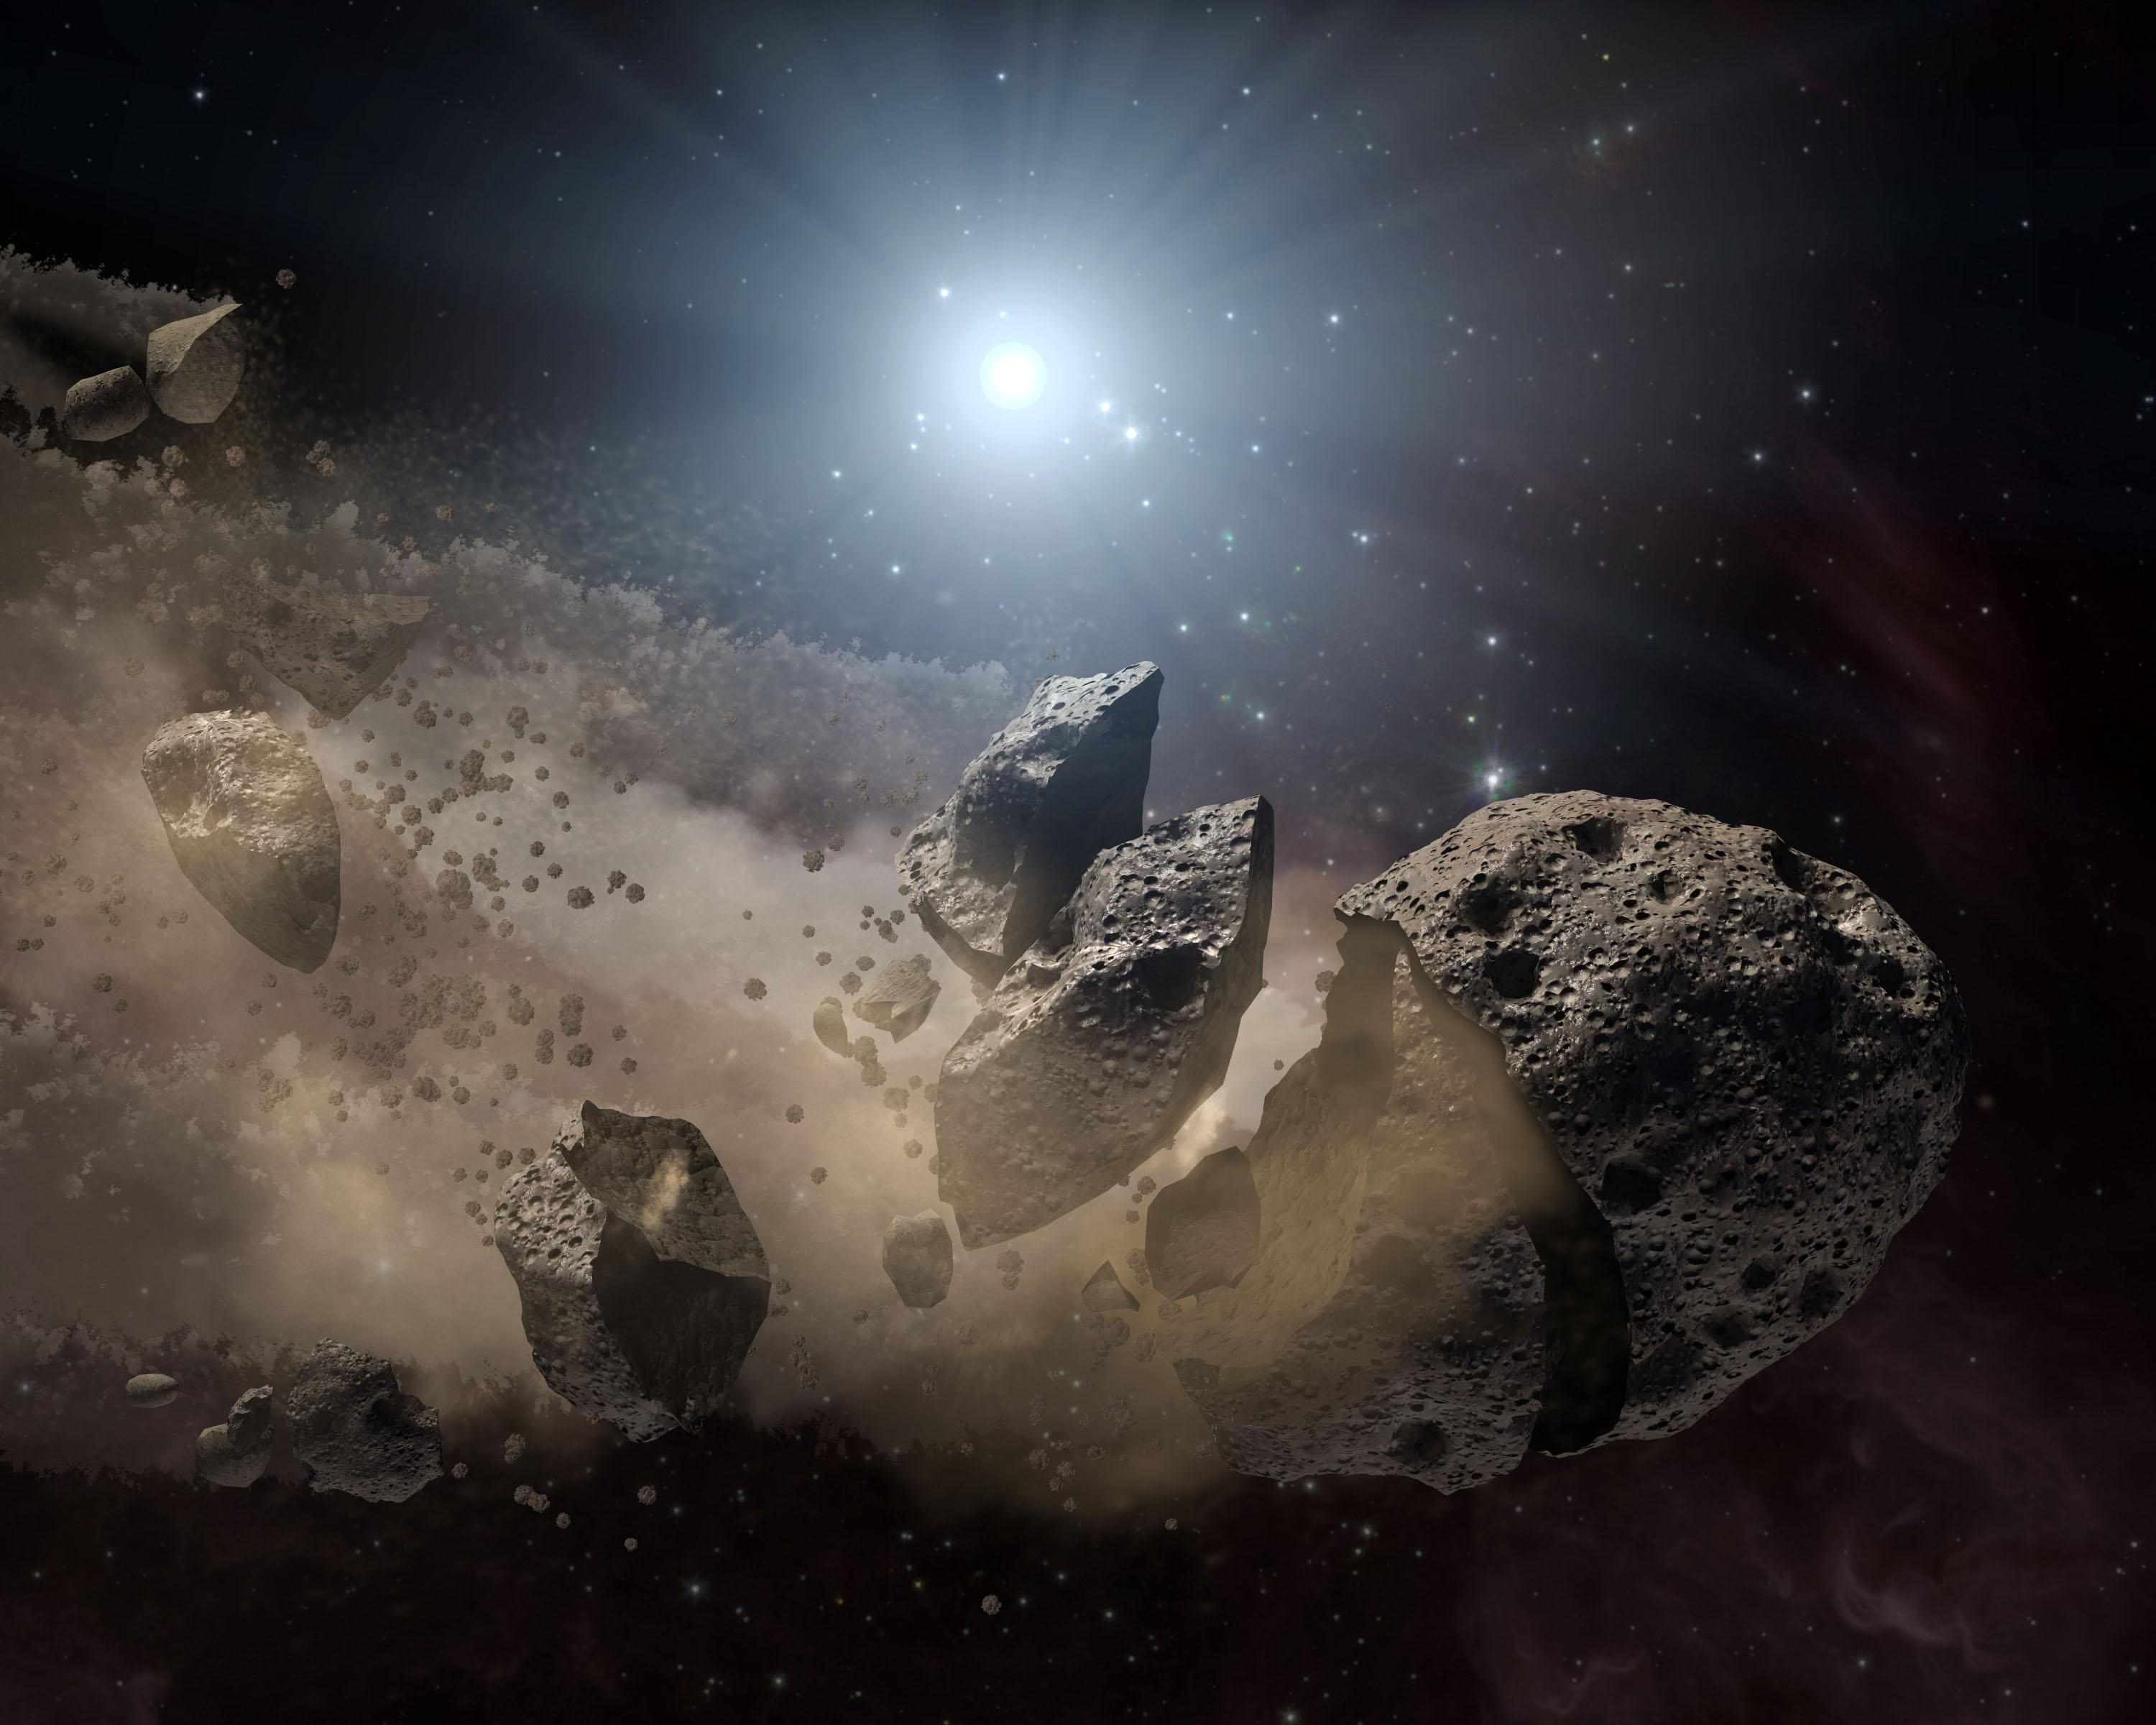 An artist's impression of an asteroid breaking up.